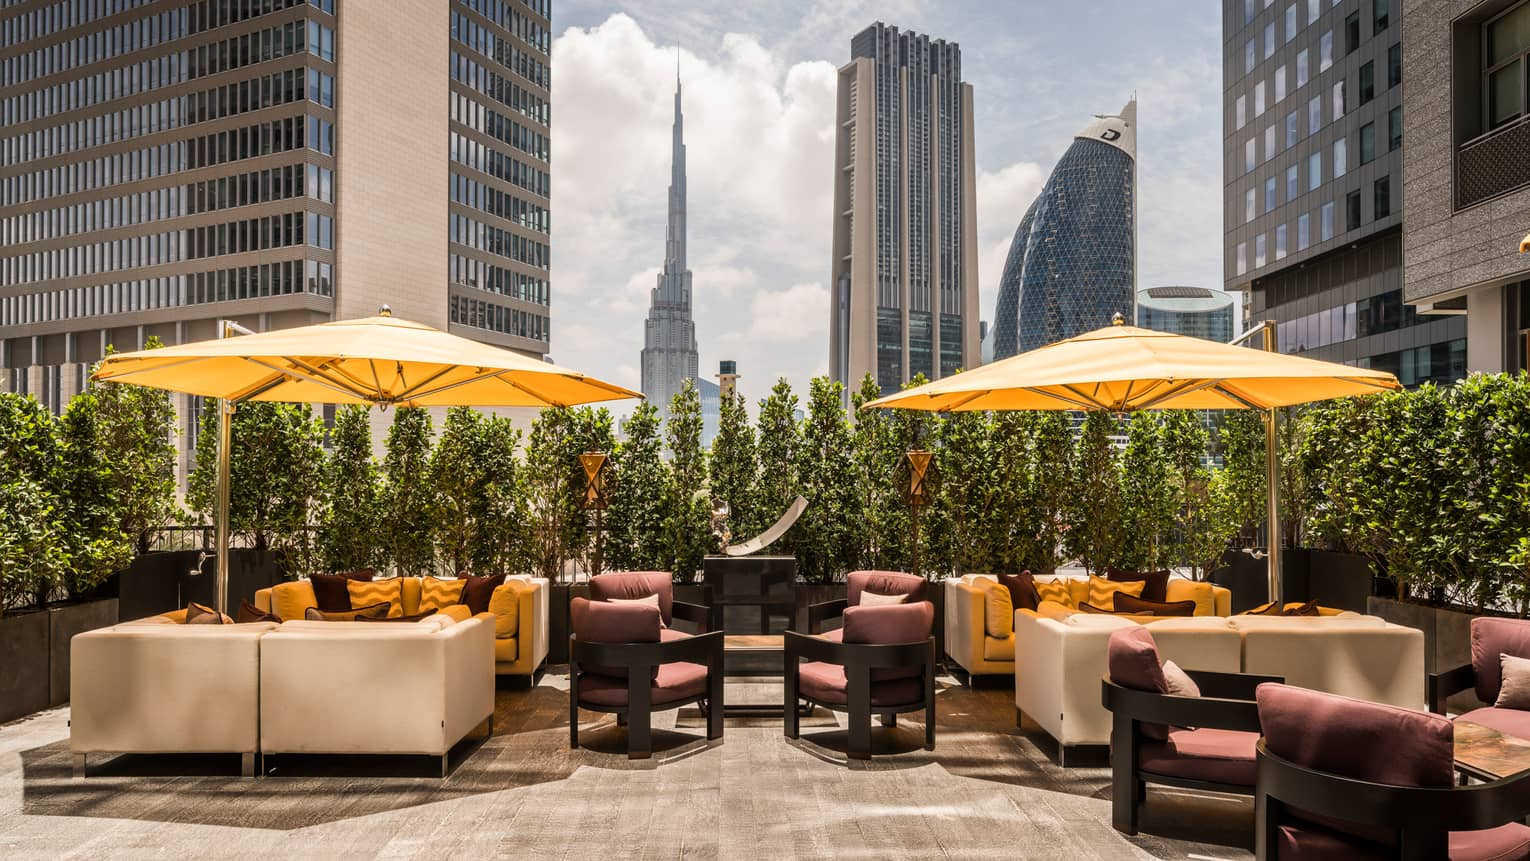 Sunny Penrose Lounge patio with white sofas and chairs, large yellow umbrellas, Dubai skyline